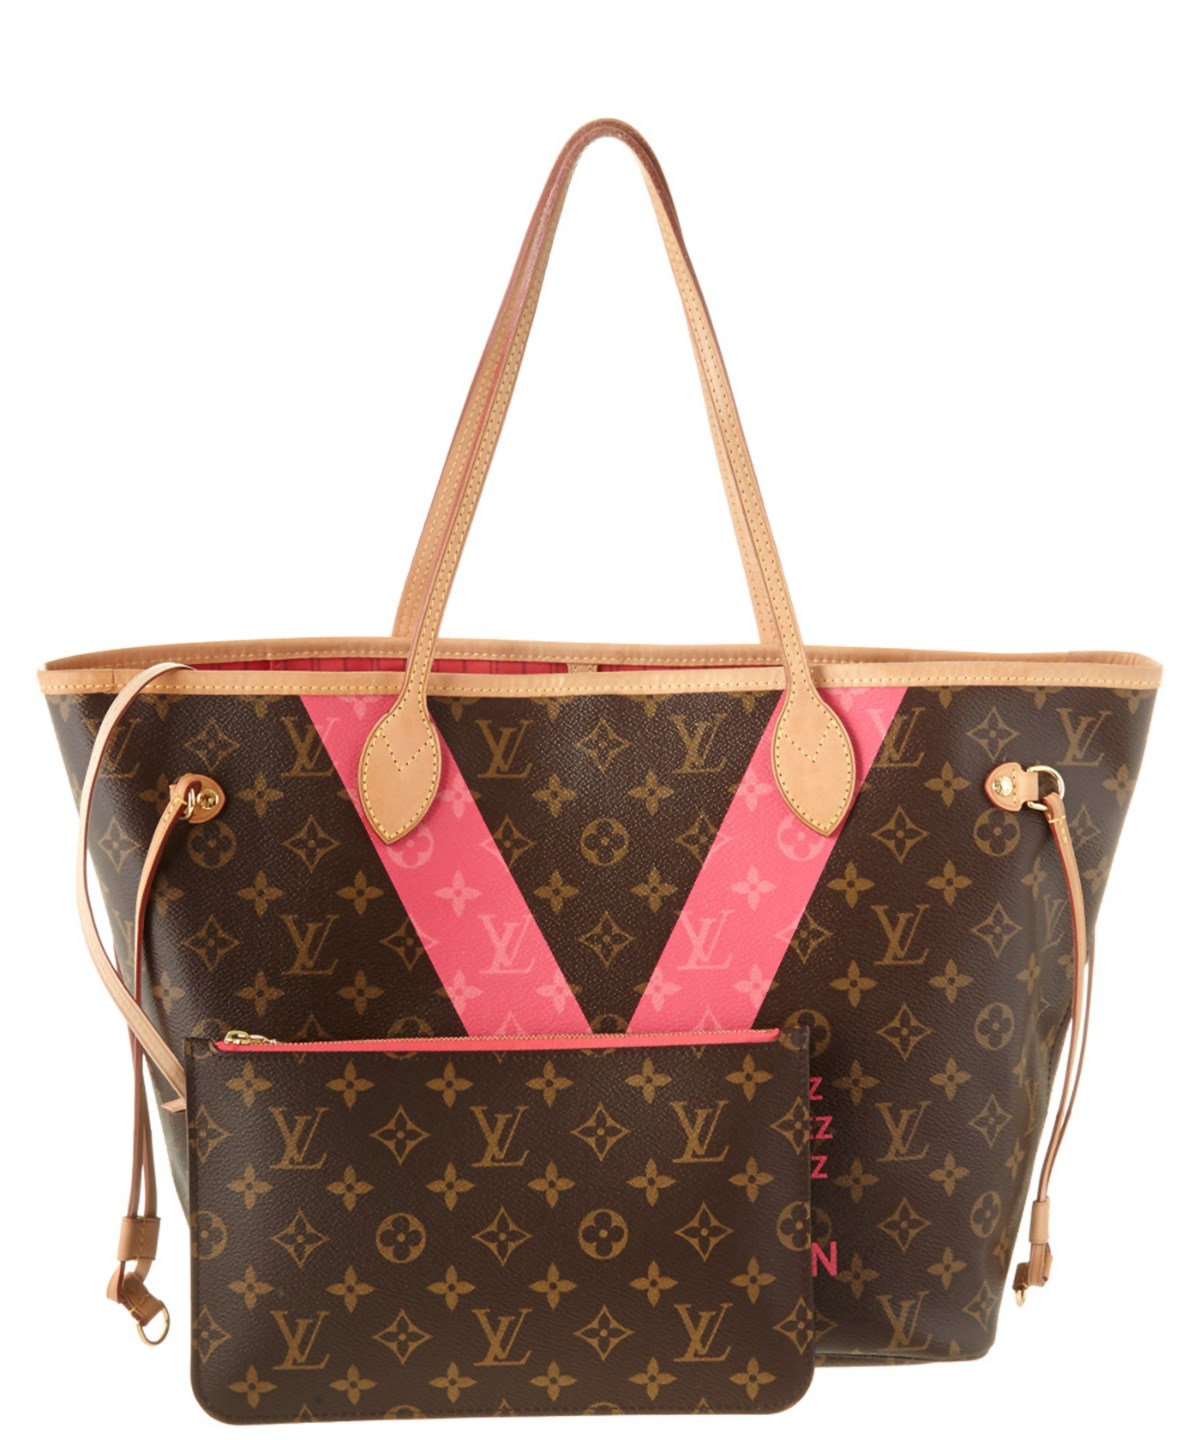 003a6ae71eaa Louis Vuitton Pre-Owned  Monogram Croissant Mm In Brown